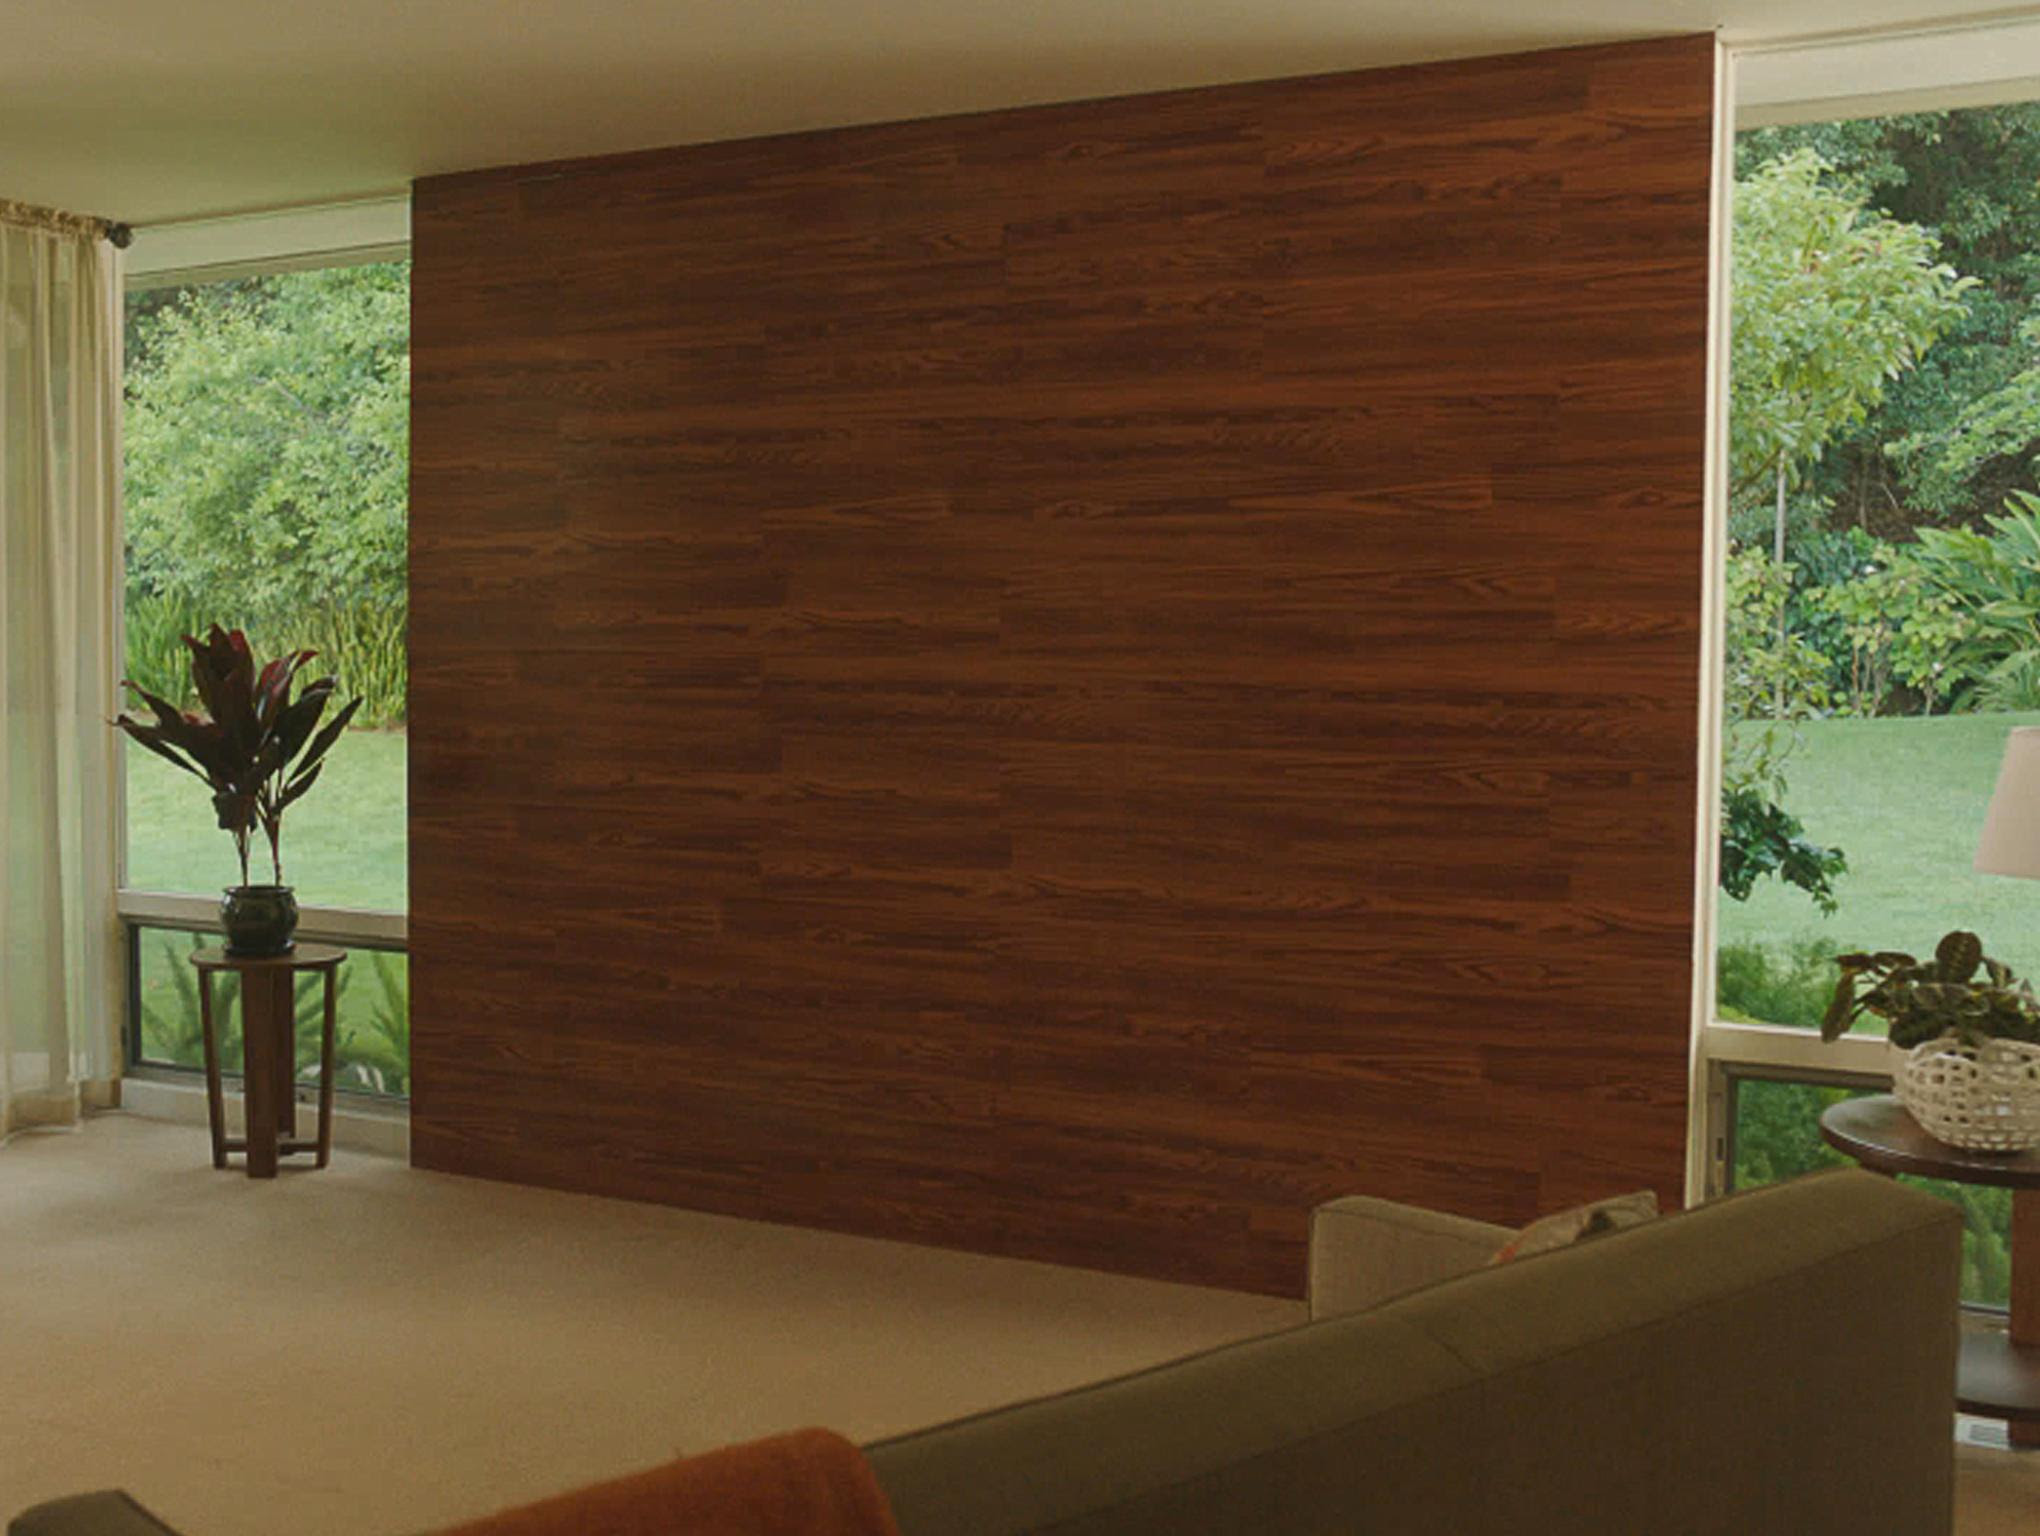 How To Build A Wall Using Laminate Flooring The Home Depot Community